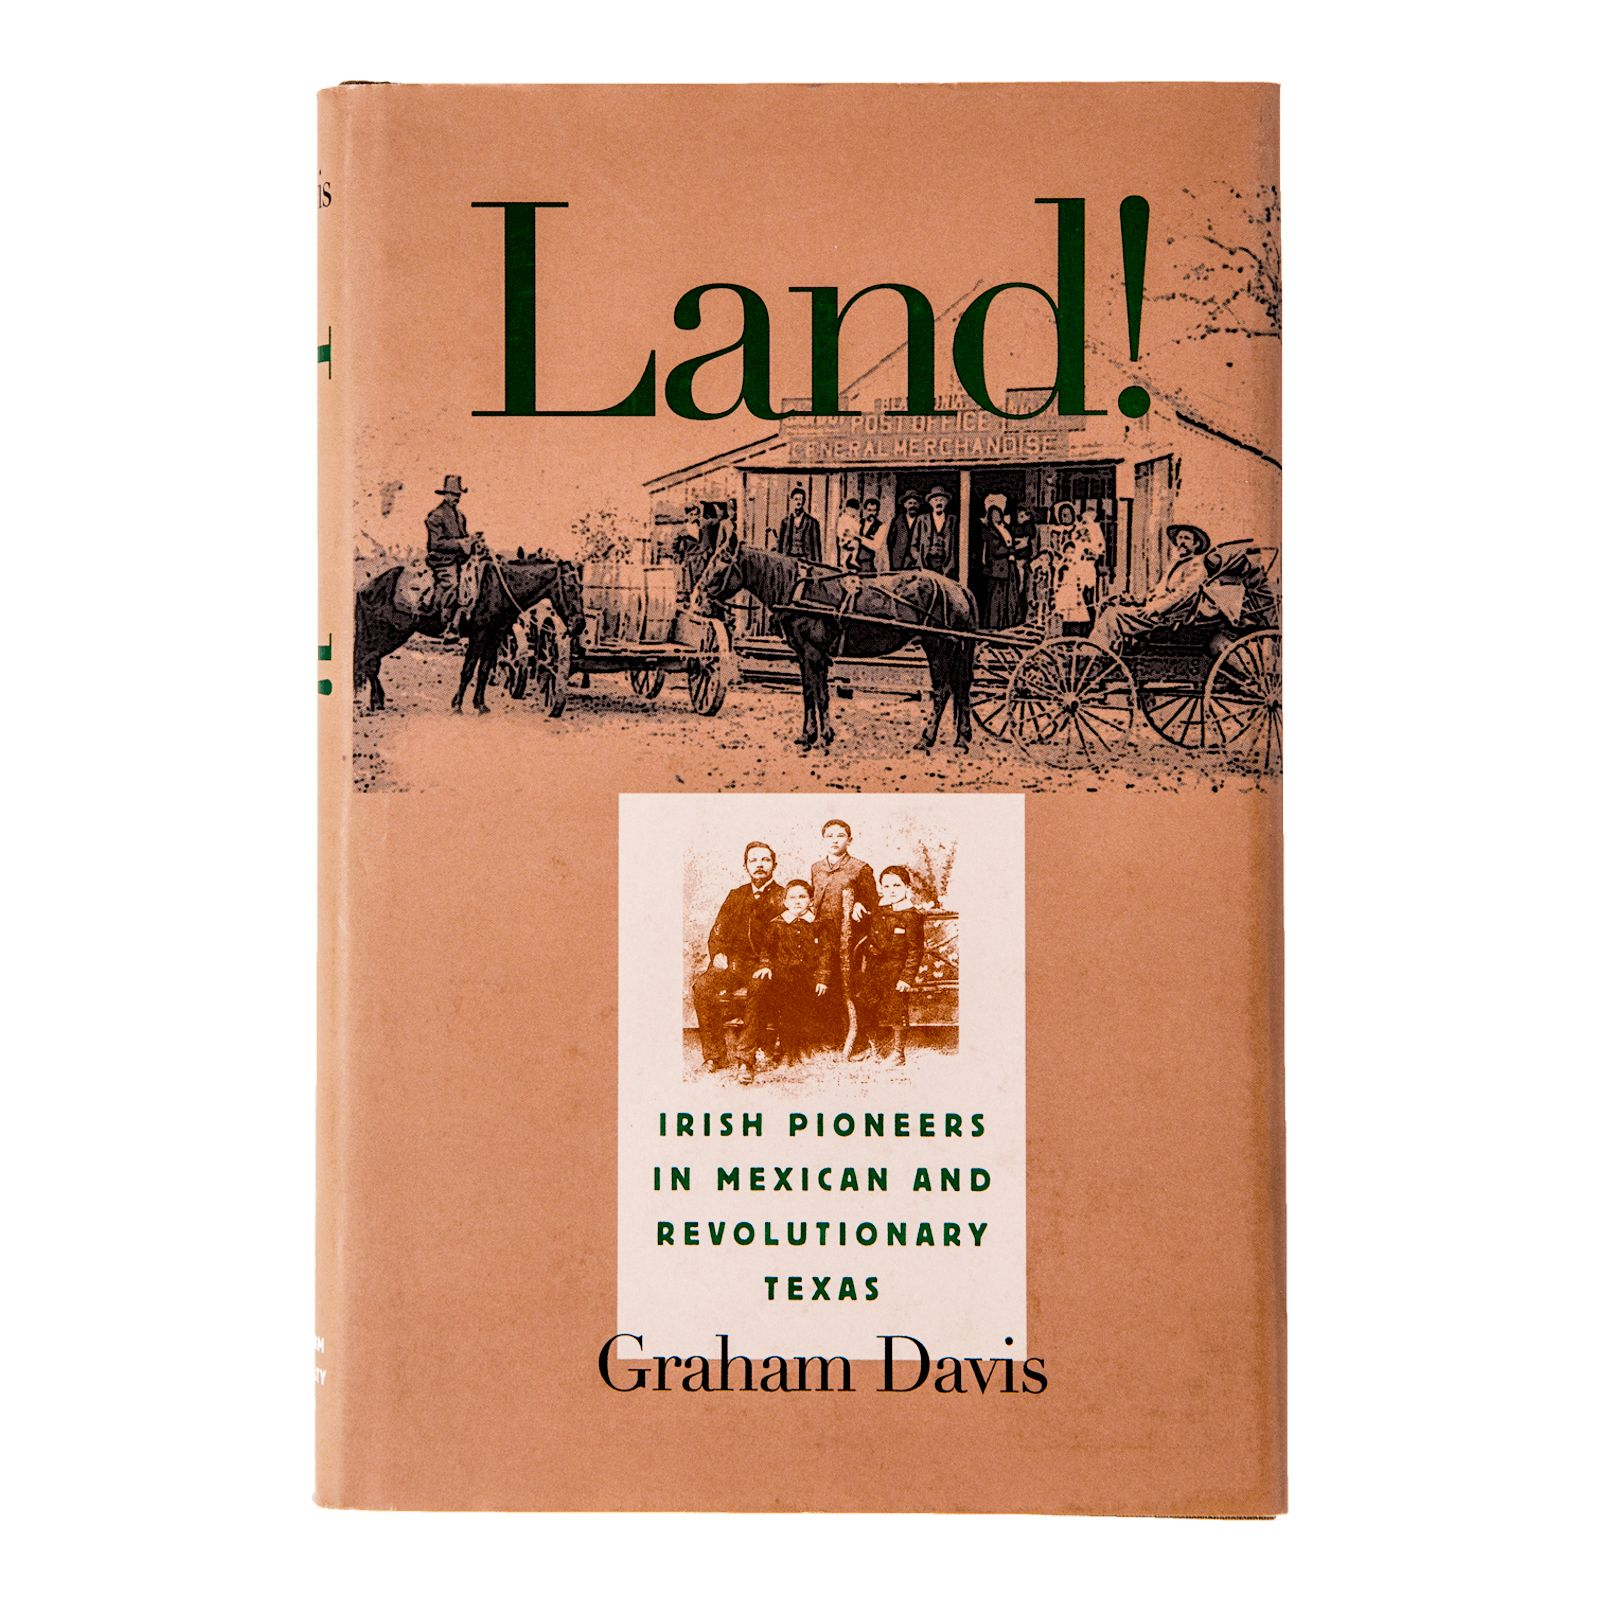 Land! Irish Pioneers